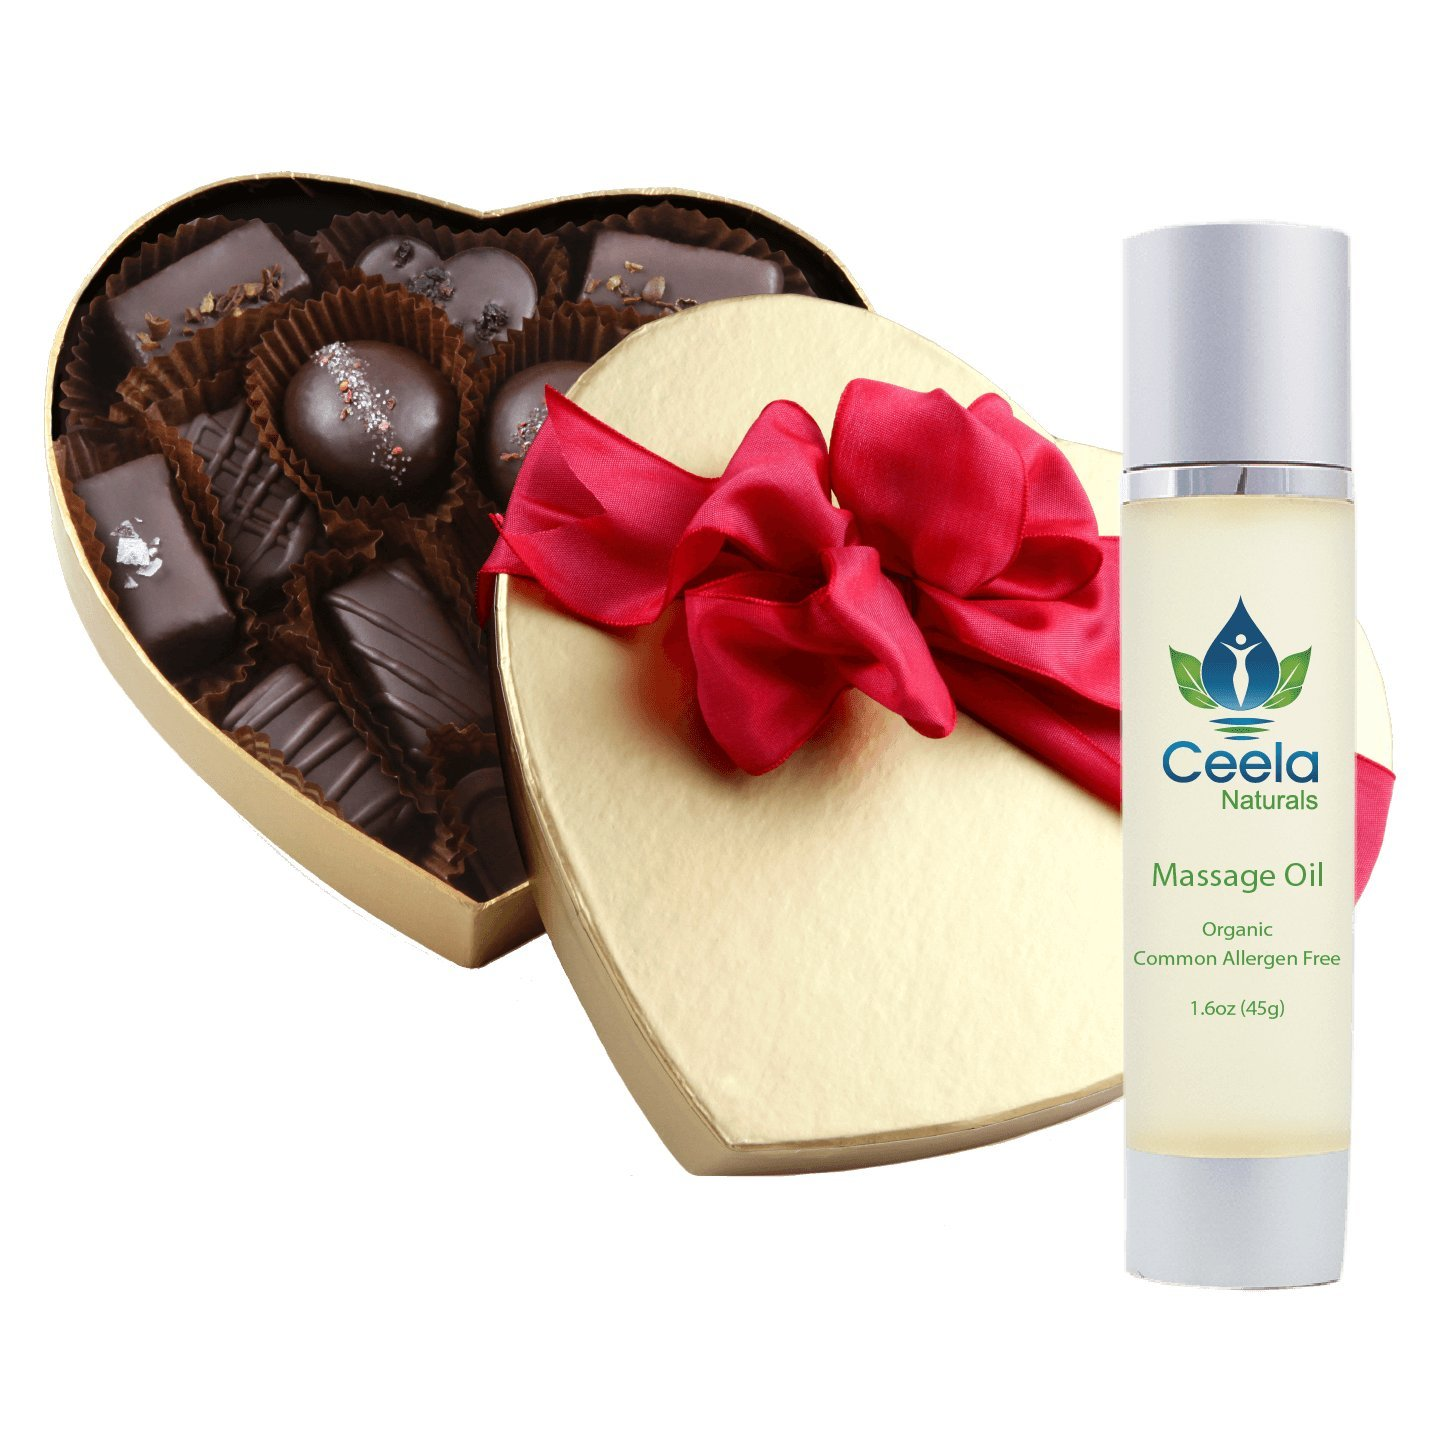 Chocolate & Touch Special - Amore di Mona 16 Piece Amore Assortment Valentine's Heart and Ceela Naturals Organic Massage Oil - Vegan, Organic, Gluten-Free, Dairy Free, Nut Free, GMO-Free, Soy Free